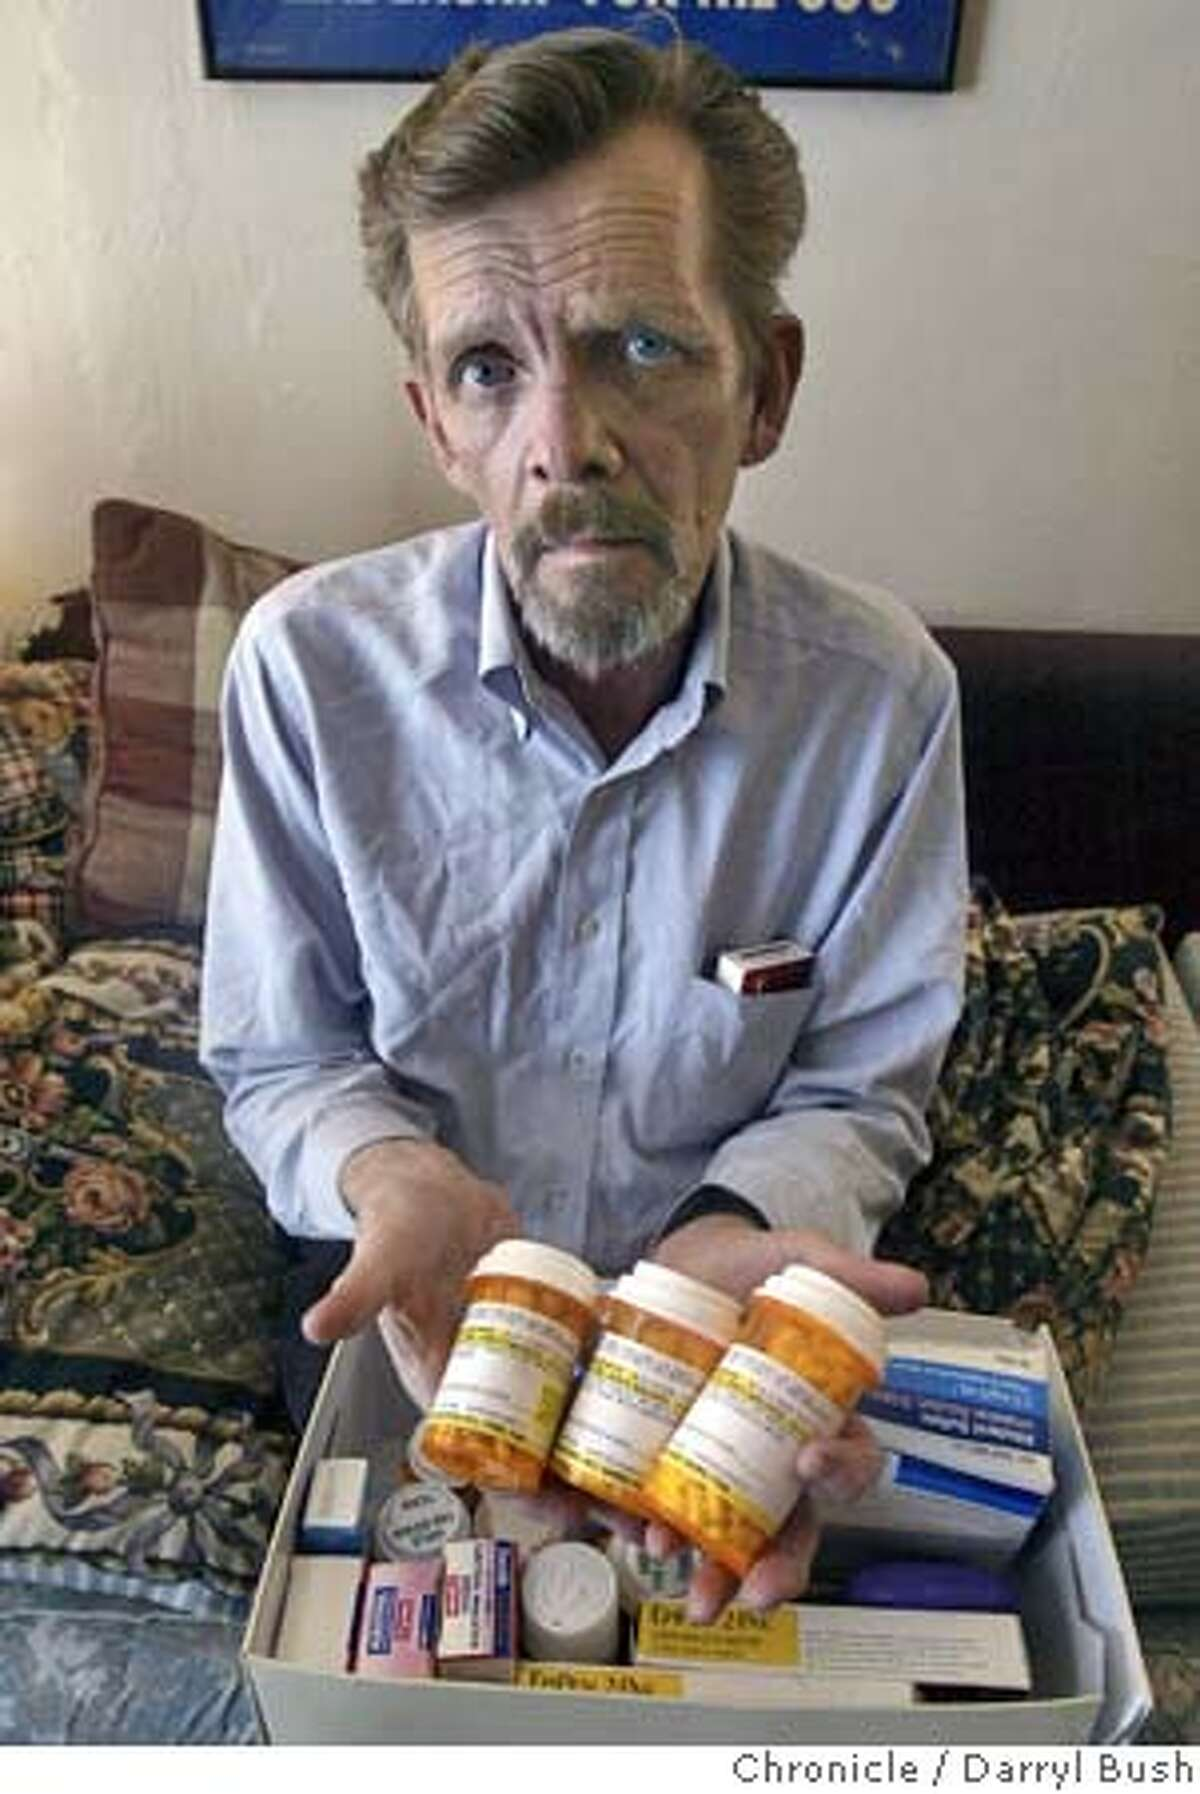 James Malone, in his home, holds some of the medications he took to help him manage some of the symptons of HIV. Malone wasn't perscribed any direct AIDS medications. Malone was misdiagnosed as HIV positive several years ago, and found out recently he is HIV negative. 8/24/04 in Hayward Darryl Bush / The Chronicle